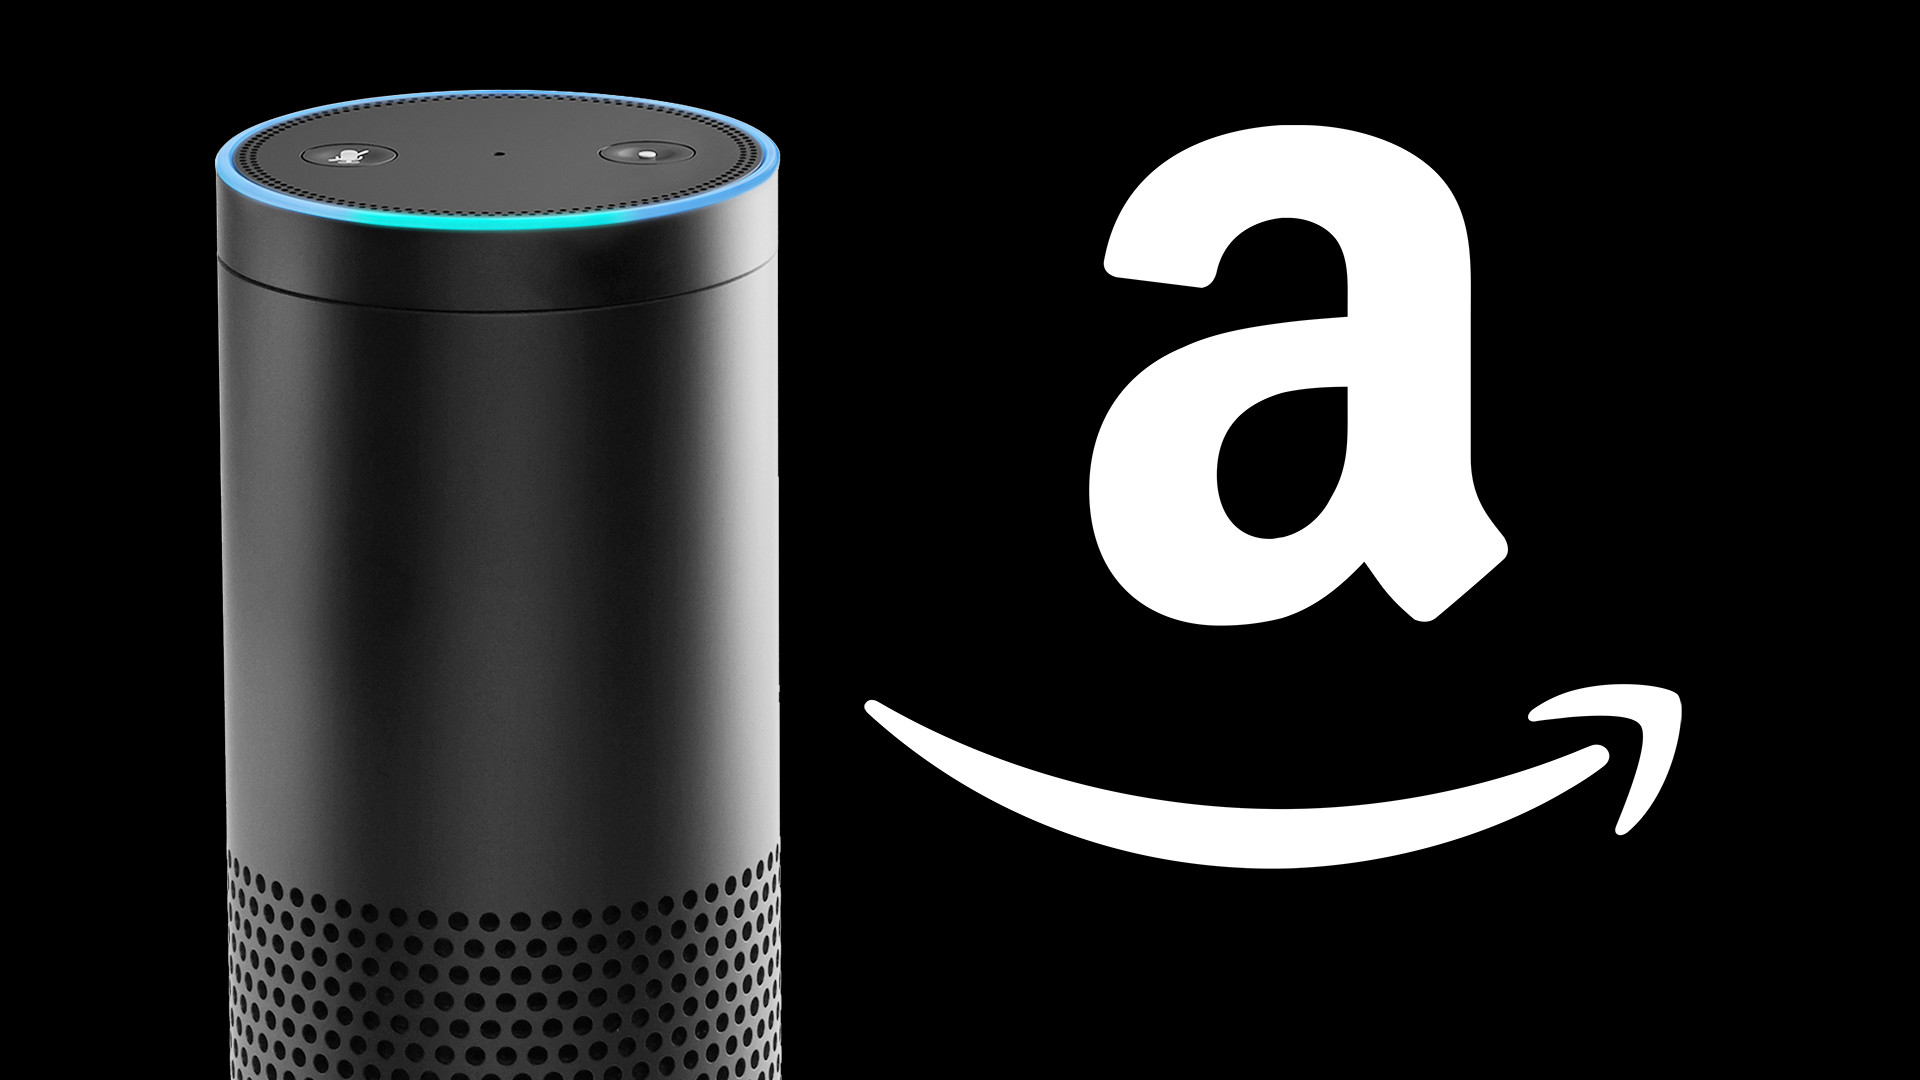 setting up amazon echo u2019s alexa to alert family to emergency